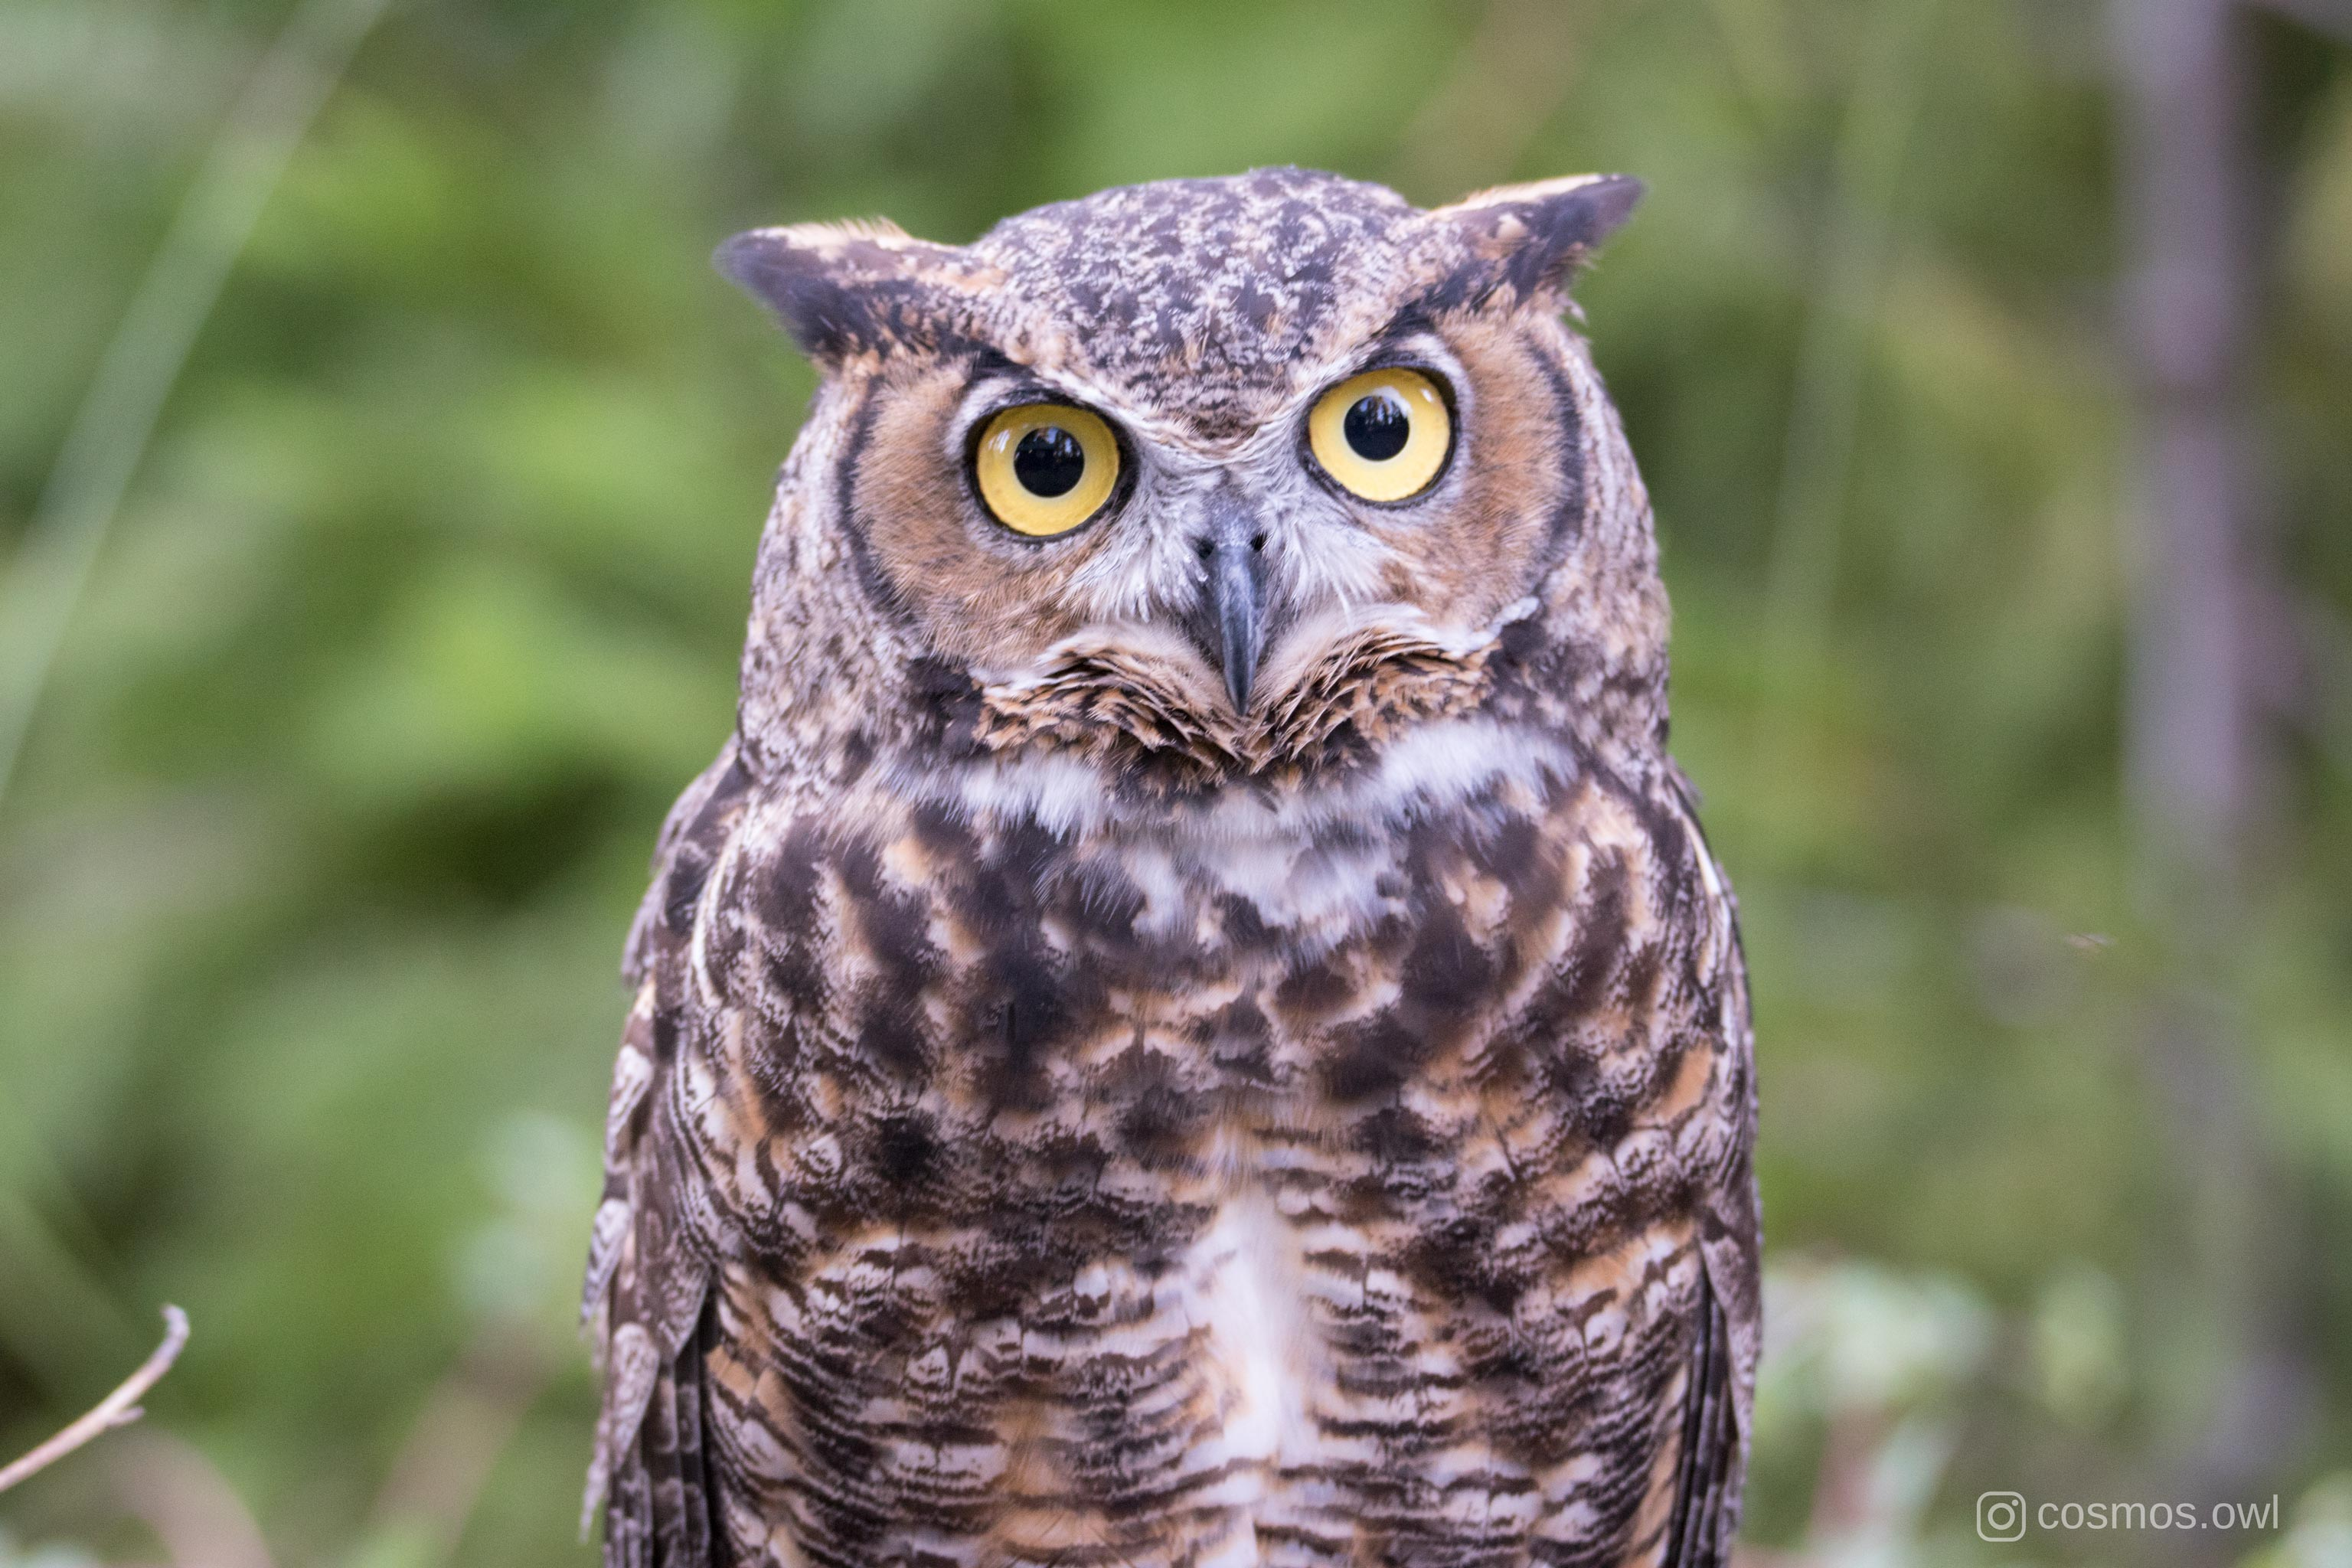 Cosmos the Great Horned Owl Sweet Face